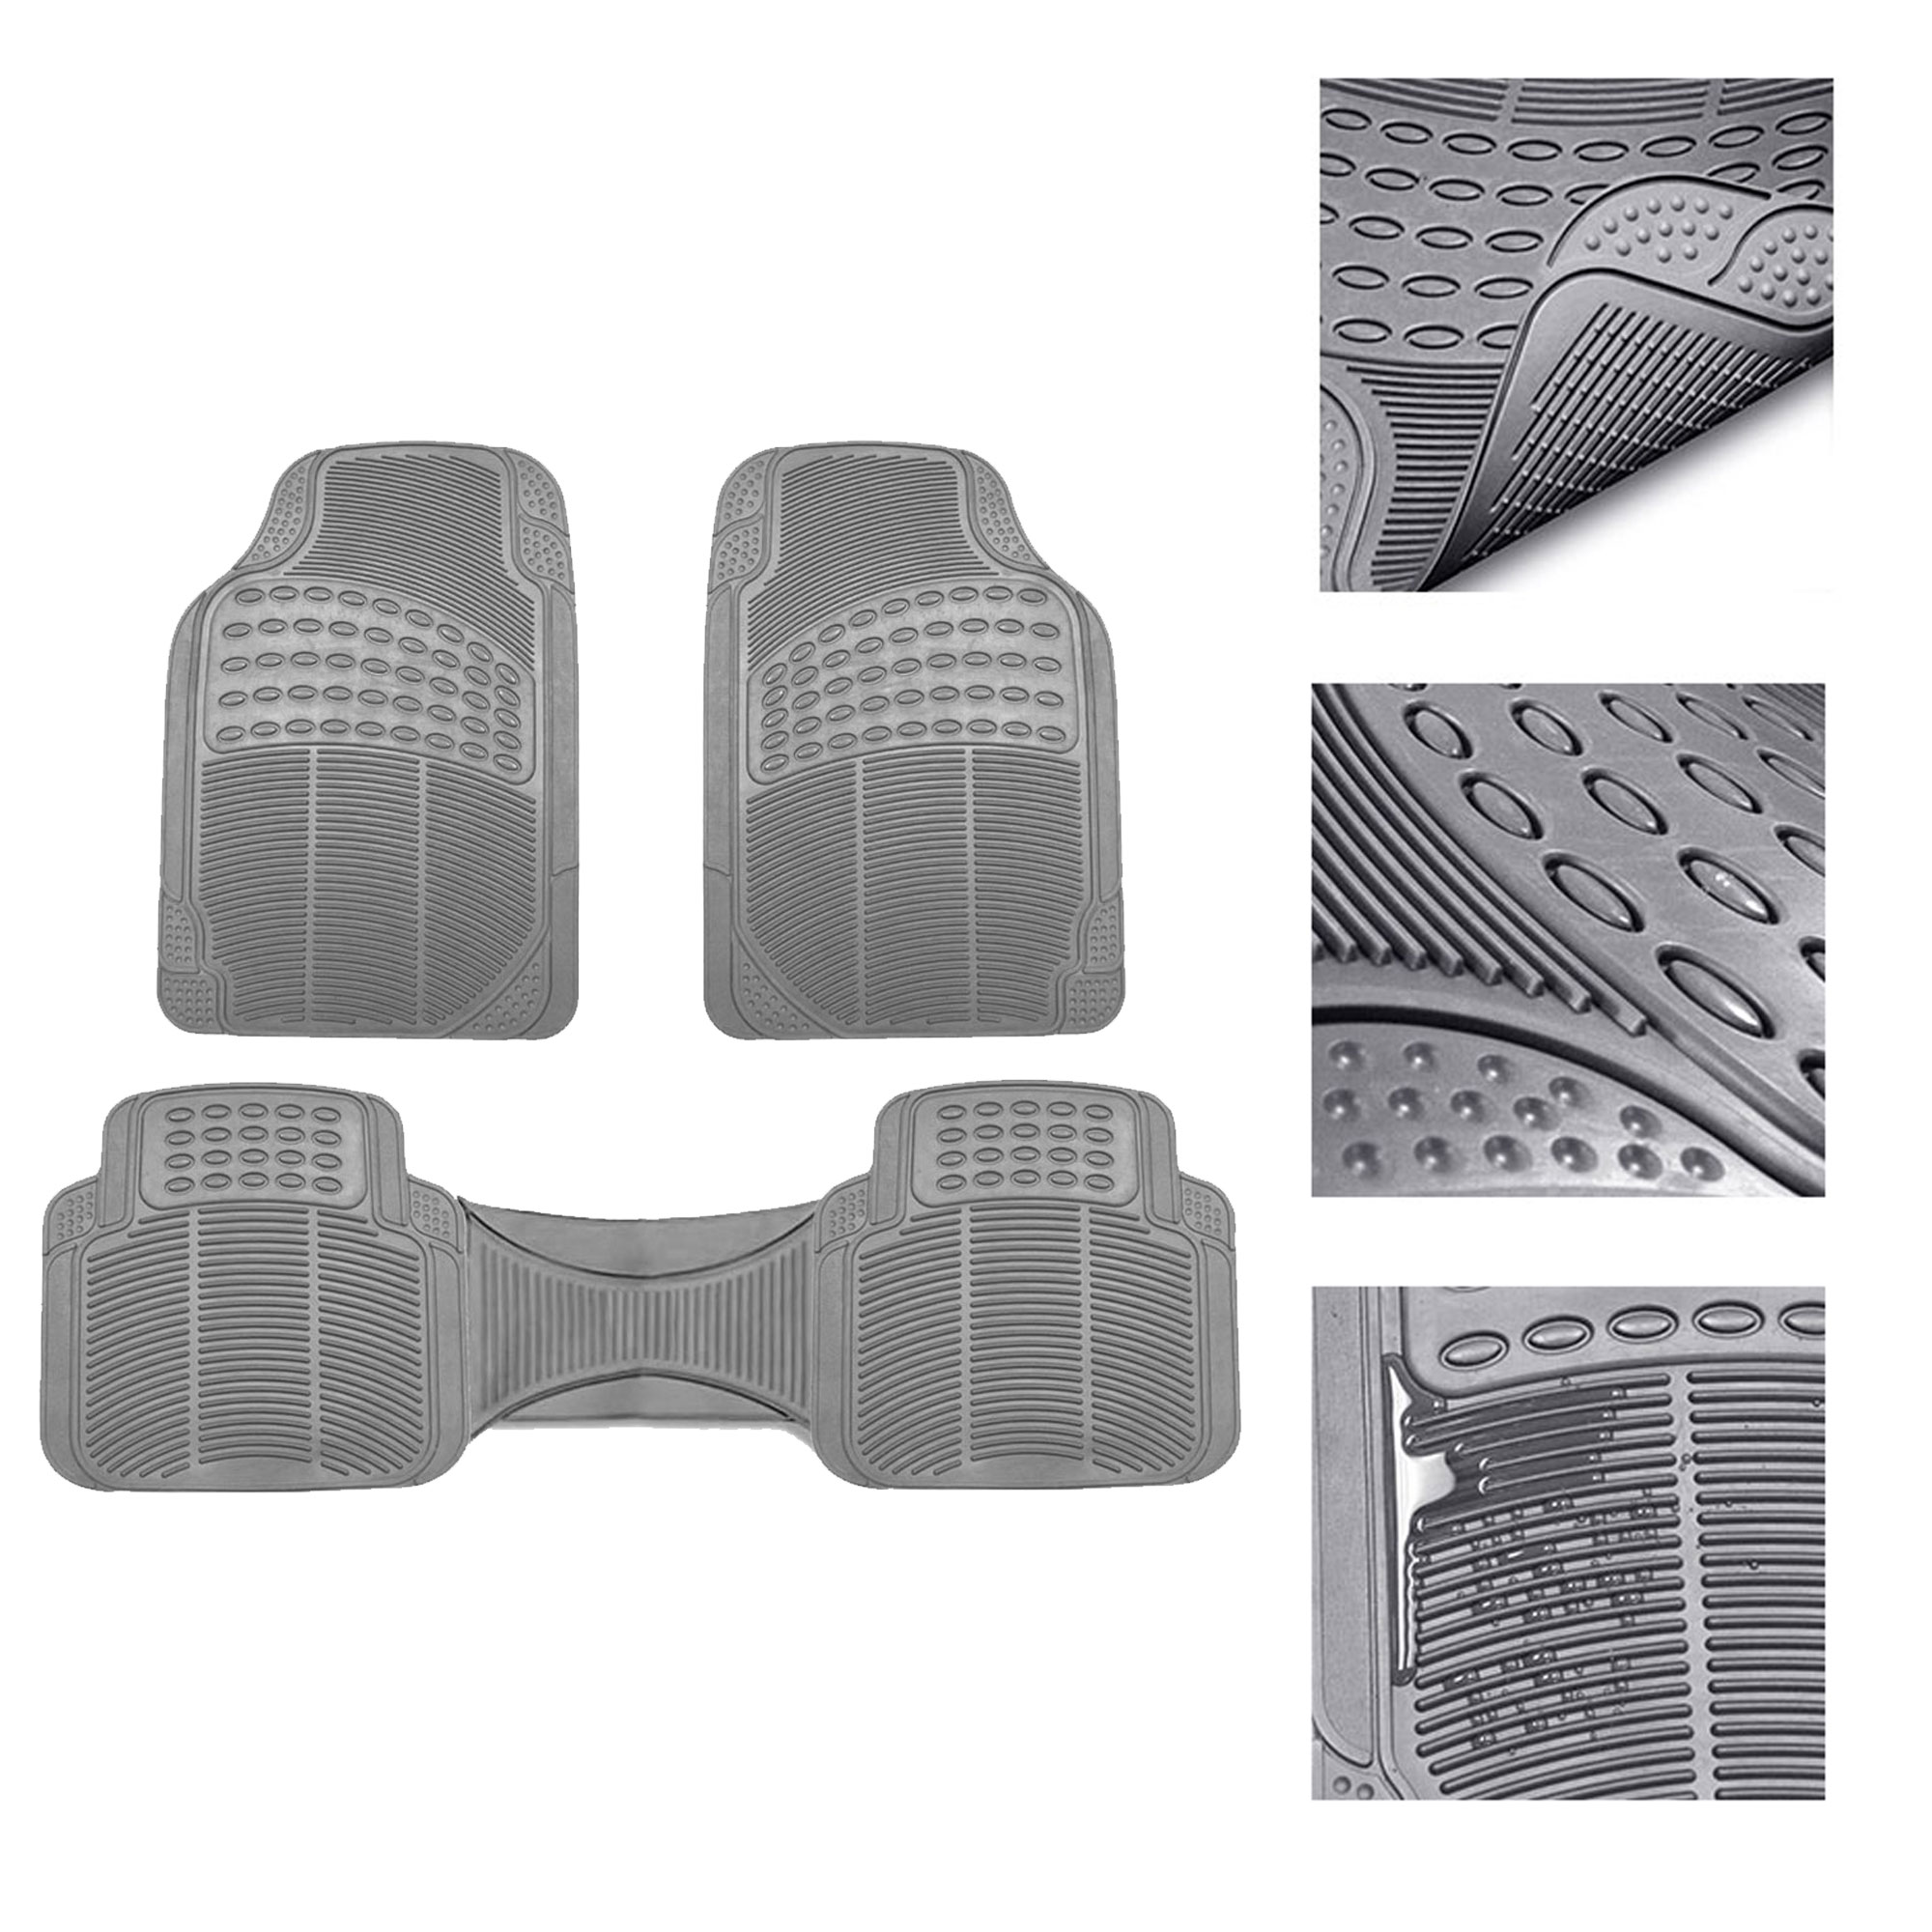 FH Group Rubber Floor Mats All Weather Tirmmable Floor Mats Full Set with Free Gift, 3 Colors